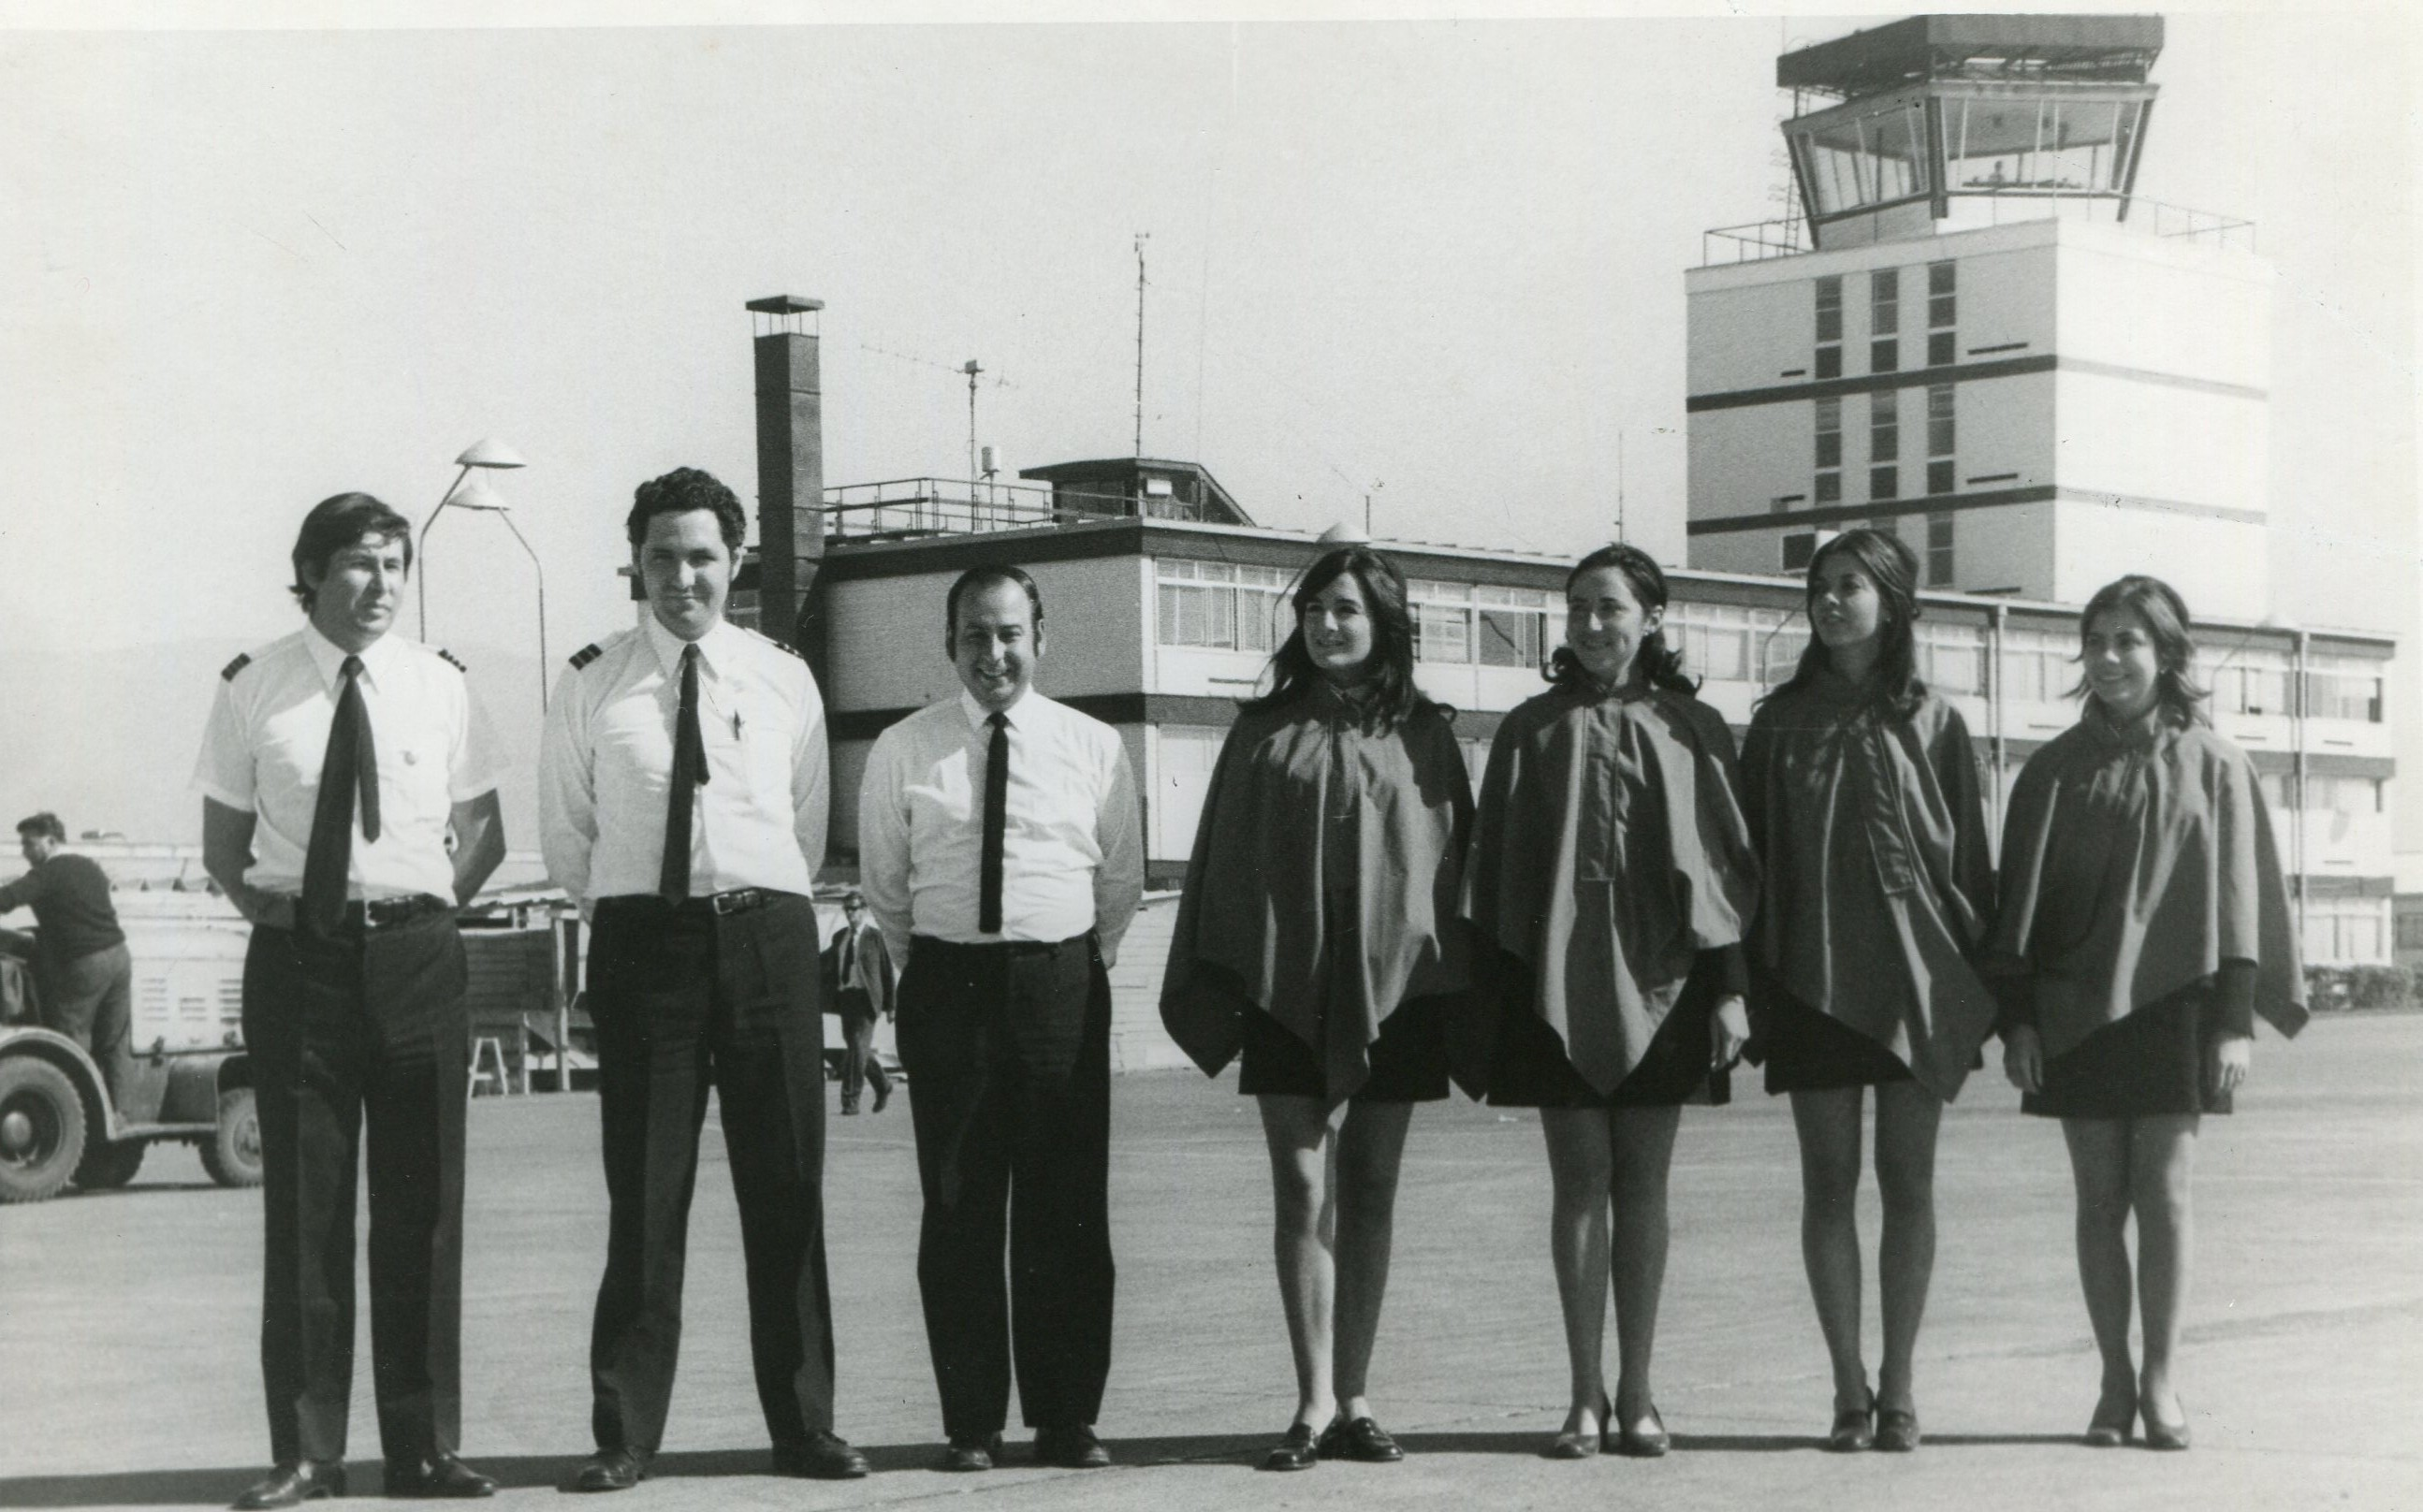 Enterreno - Fotos históricas de chile - fotos antiguas de Chile - Aeropuerto Pudahuel en 1969